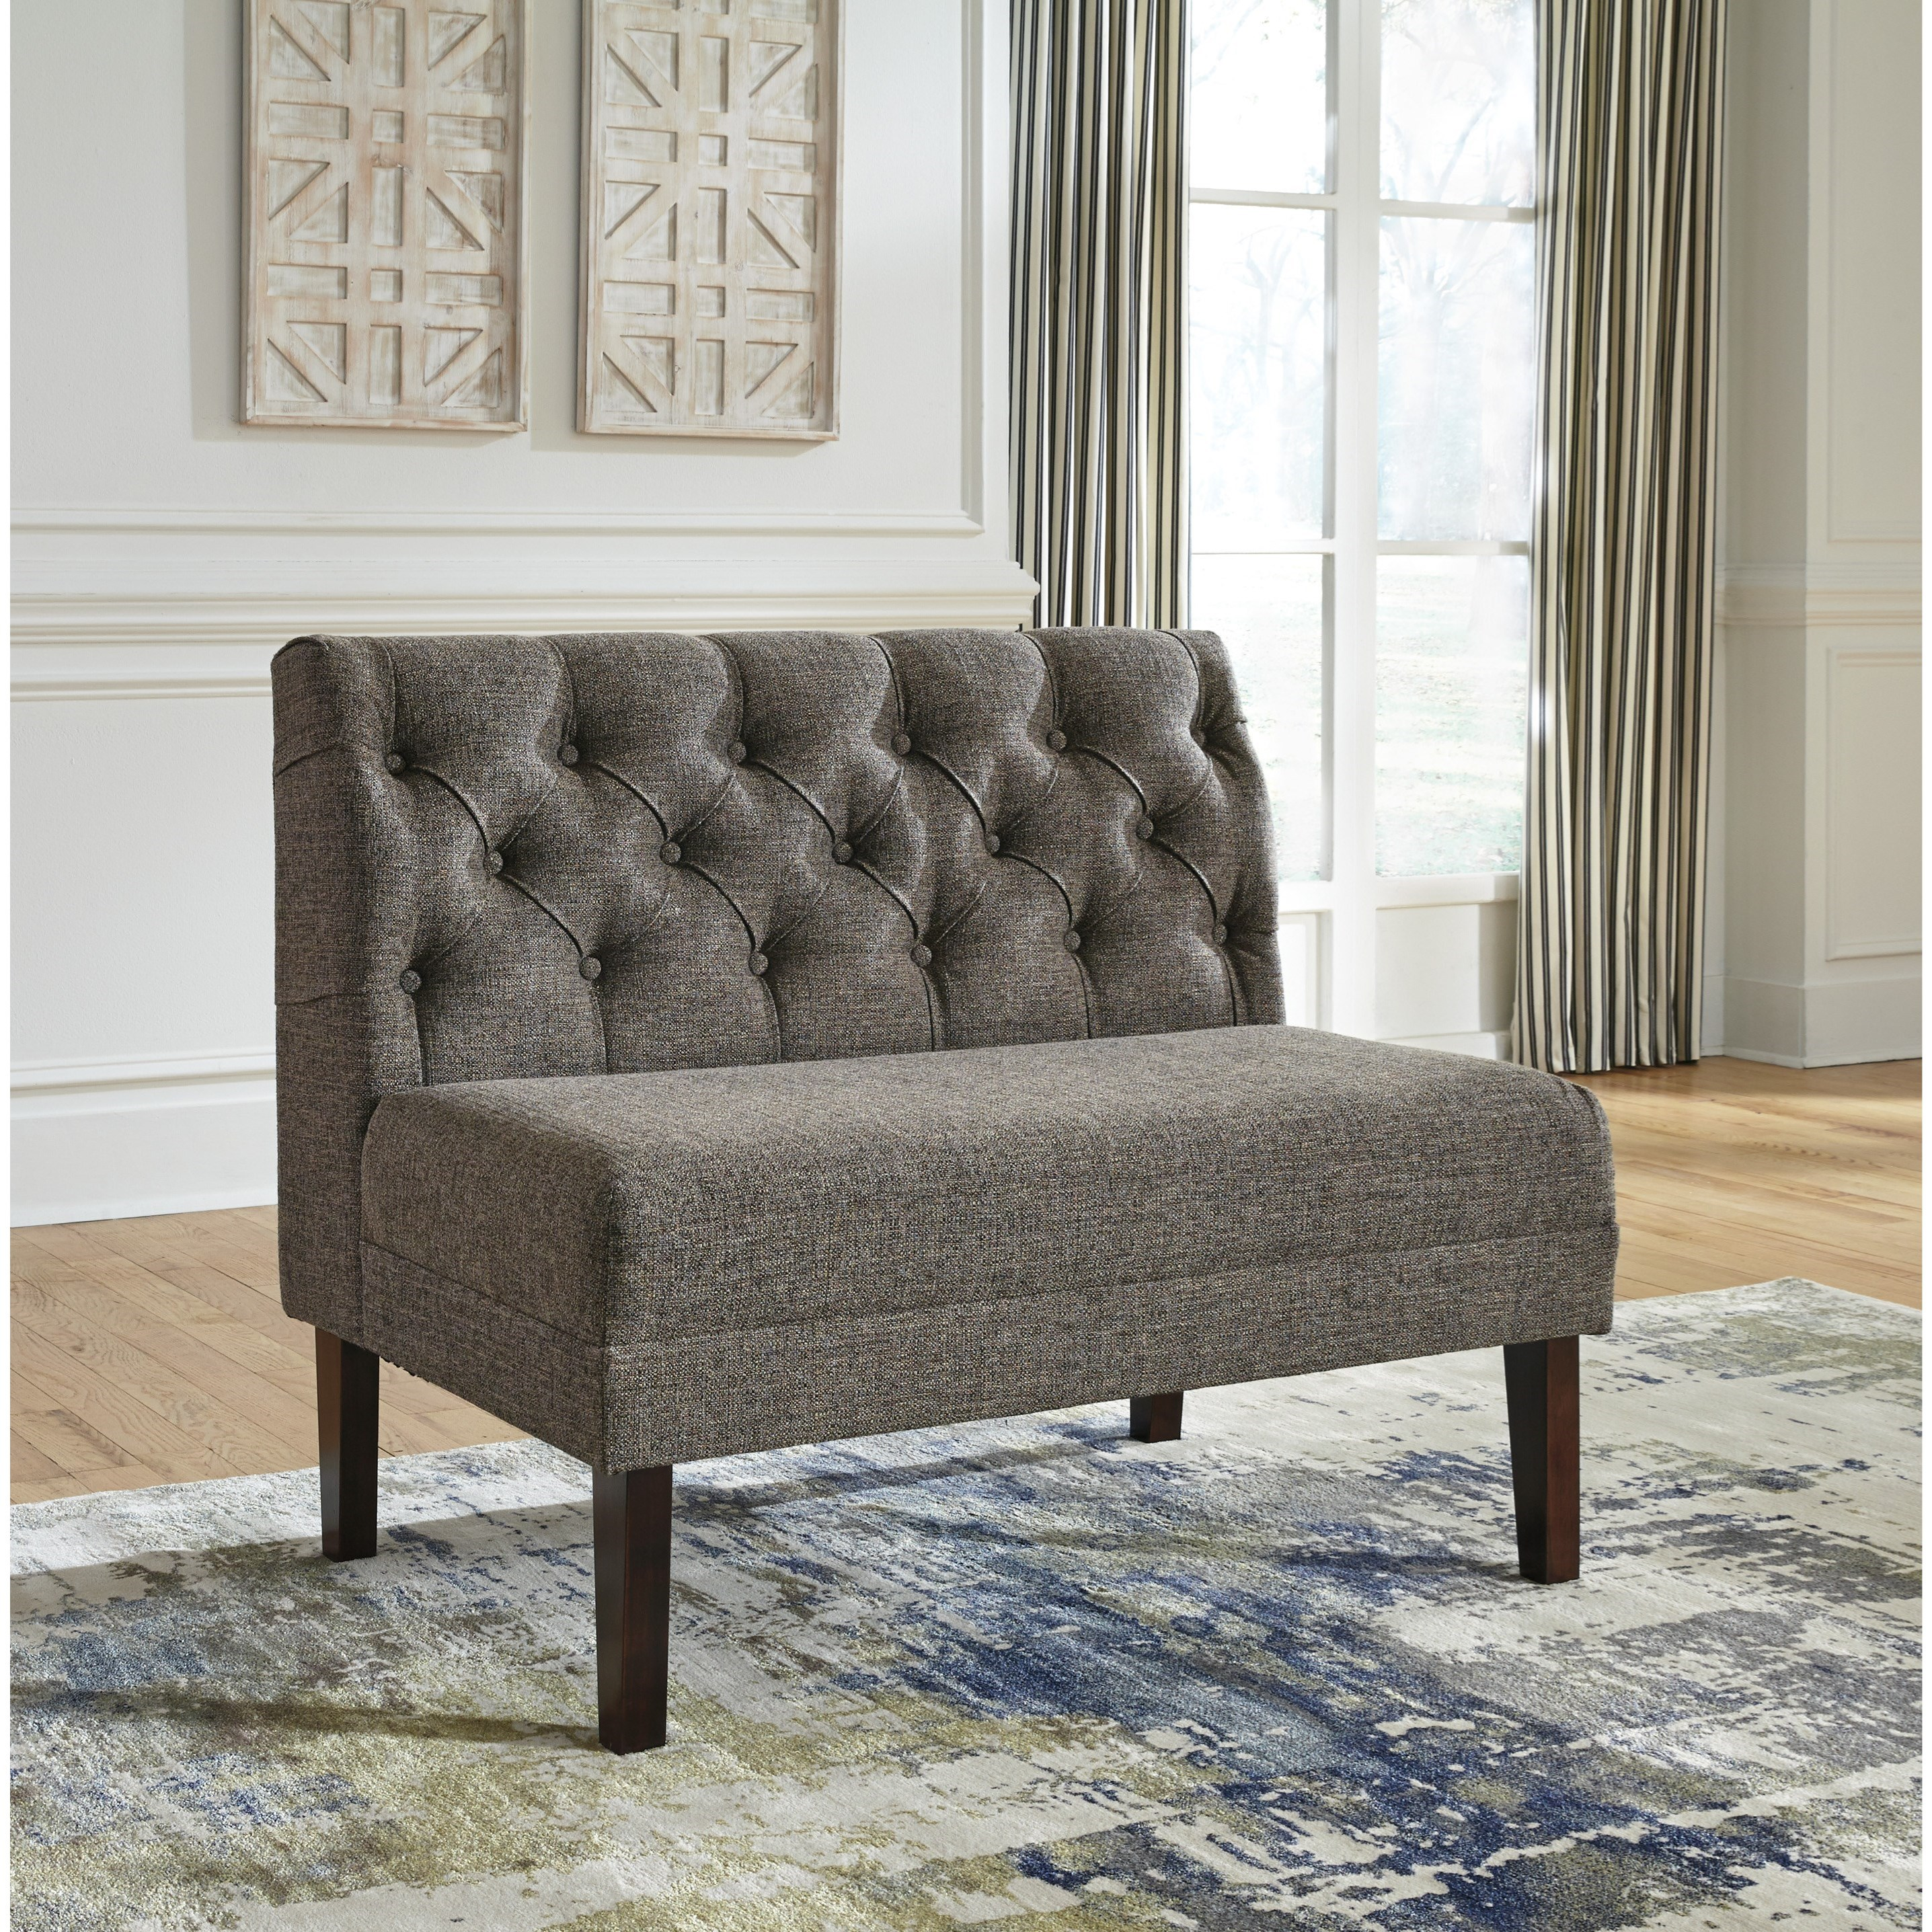 Tripton Extra Large Dining Bench: Signature Design By Ashley Tripton Large Upholstered